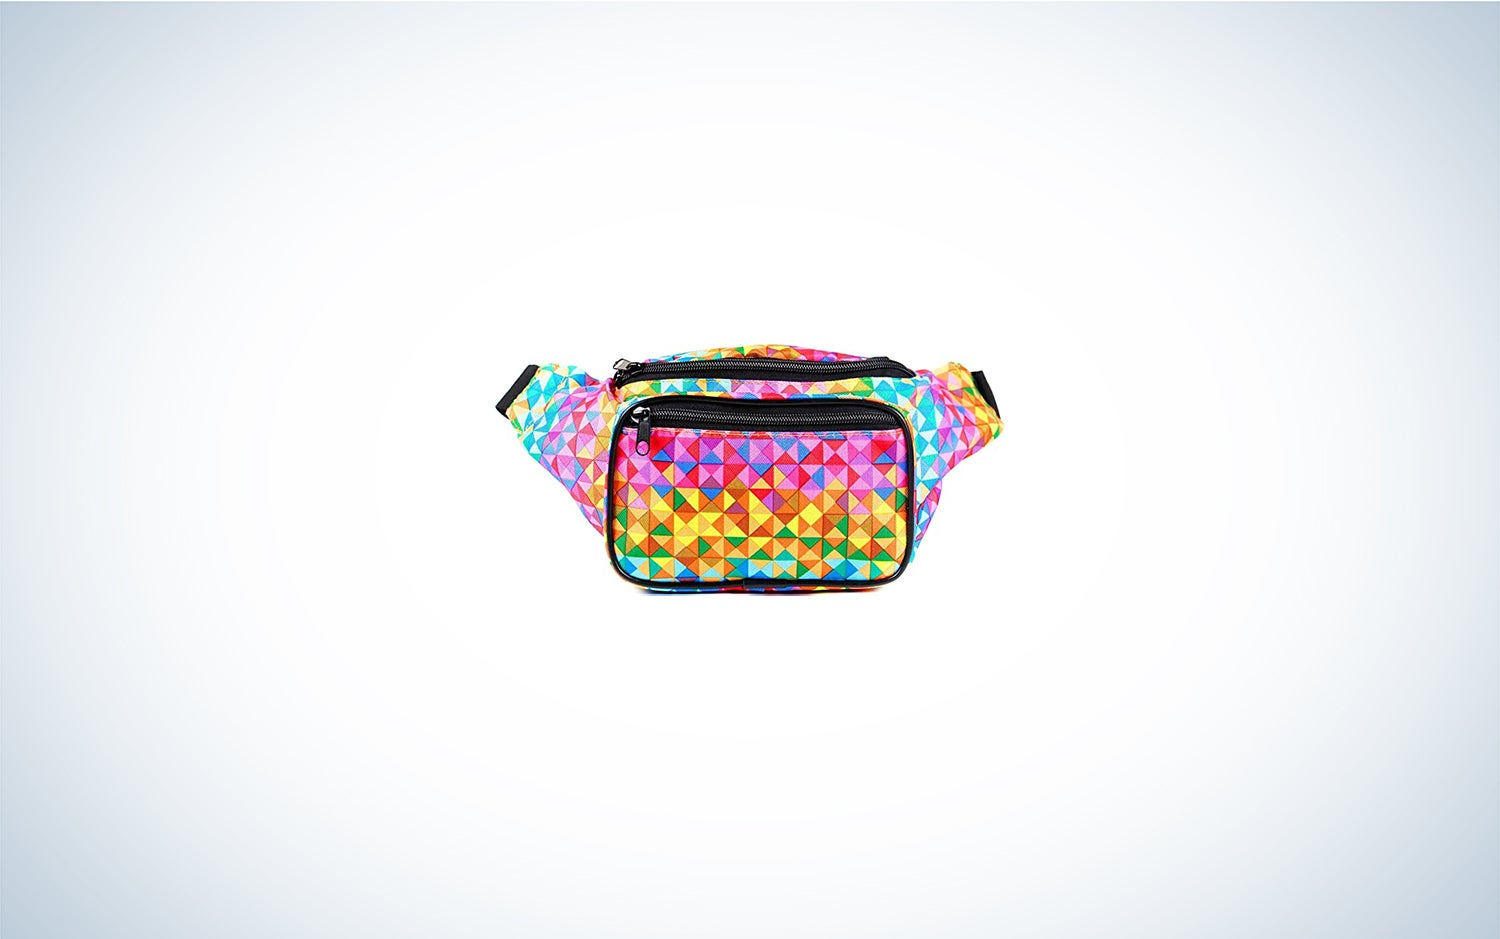 a rainbow-colored fanny pack